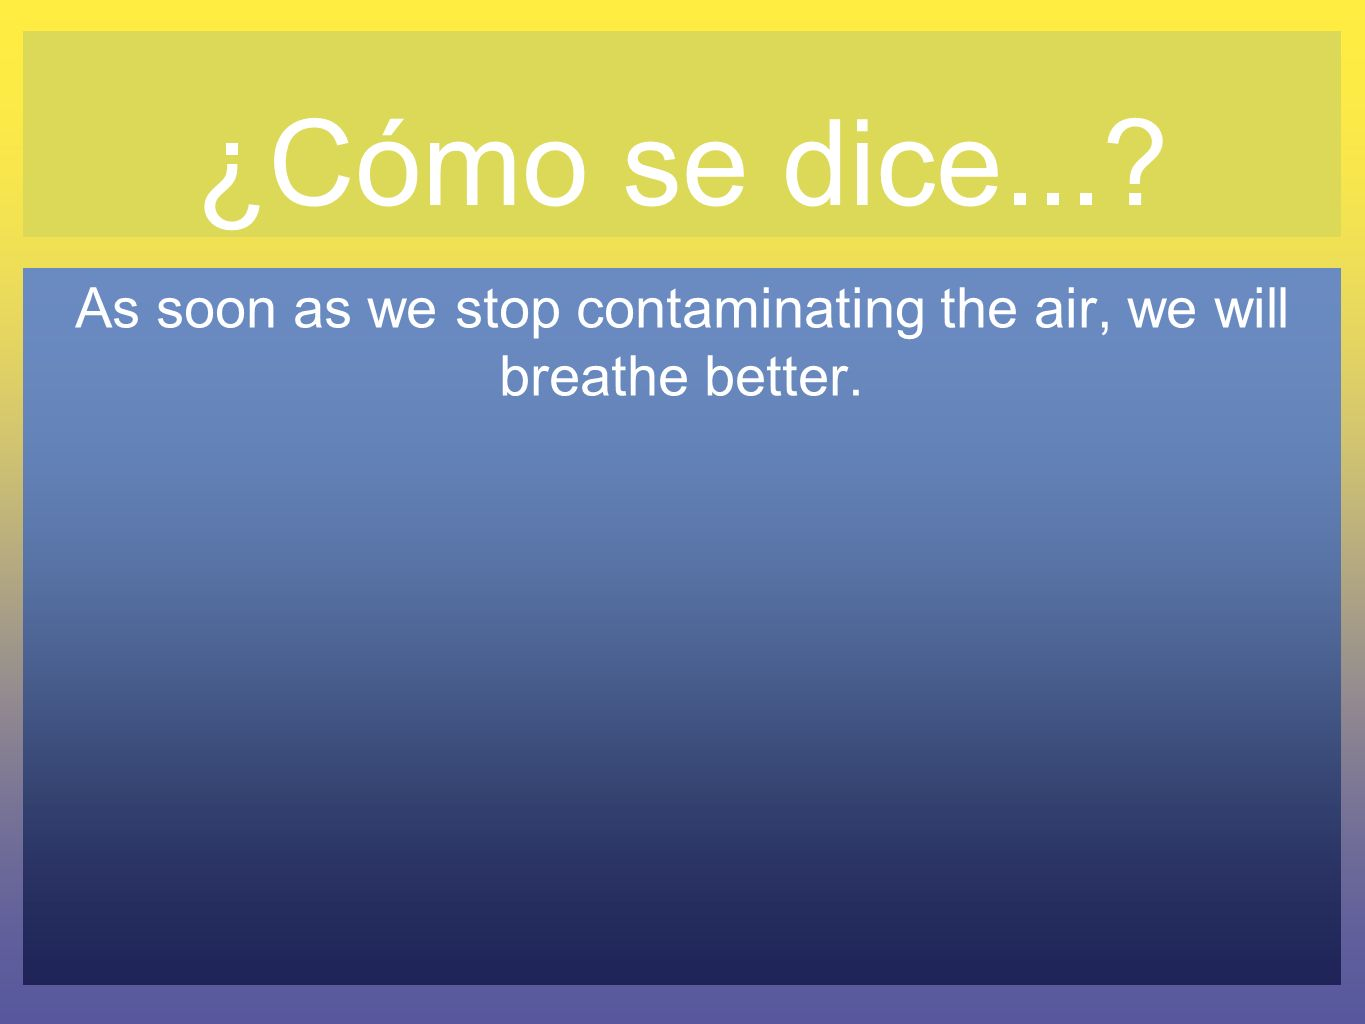 As soon as we stop contaminating the air, we will breathe better.